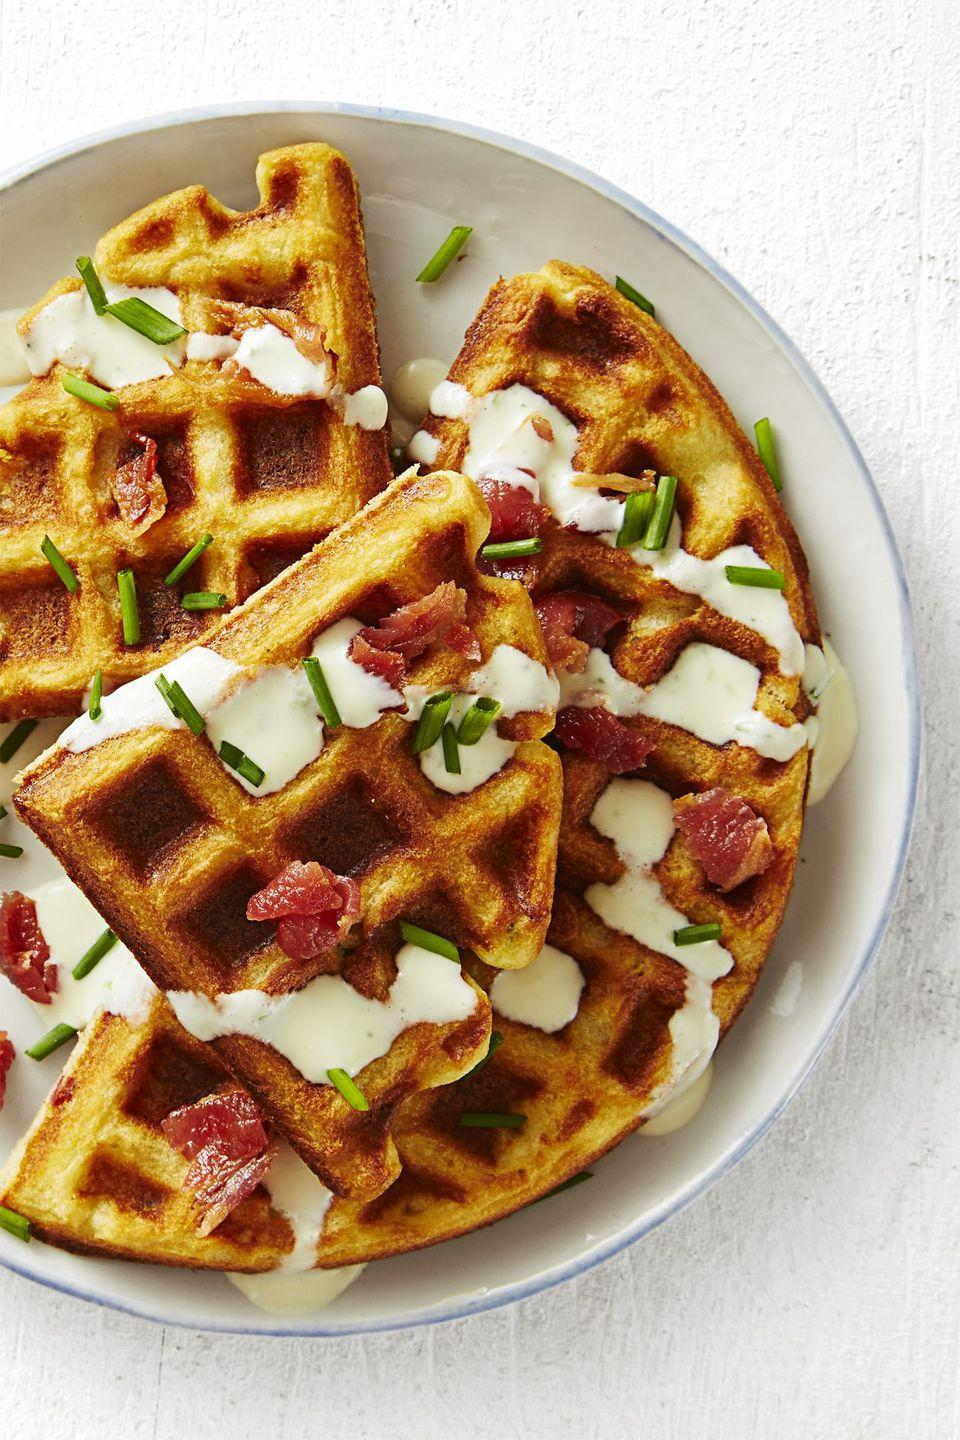 """<p>No syrup here: These waffles taste best with a creamy layer of <a href=""""https://www.goodhousekeeping.com/food-recipes/a45222/best-ever-ranch-recipe/"""" rel=""""nofollow noopener"""" target=""""_blank"""" data-ylk=""""slk:ranch"""" class=""""link rapid-noclick-resp"""">ranch</a>. Yes, you heard us right.</p><p><em><a href=""""https://www.goodhousekeeping.com/food-recipes/a45223/savory-bacon-chive-waffles-recipe/"""" rel=""""nofollow noopener"""" target=""""_blank"""" data-ylk=""""slk:Get the recipe for Savory Bacon and Chive Waffles »"""" class=""""link rapid-noclick-resp"""">Get the recipe for Savory Bacon and Chive Waffles »</a></em></p>"""